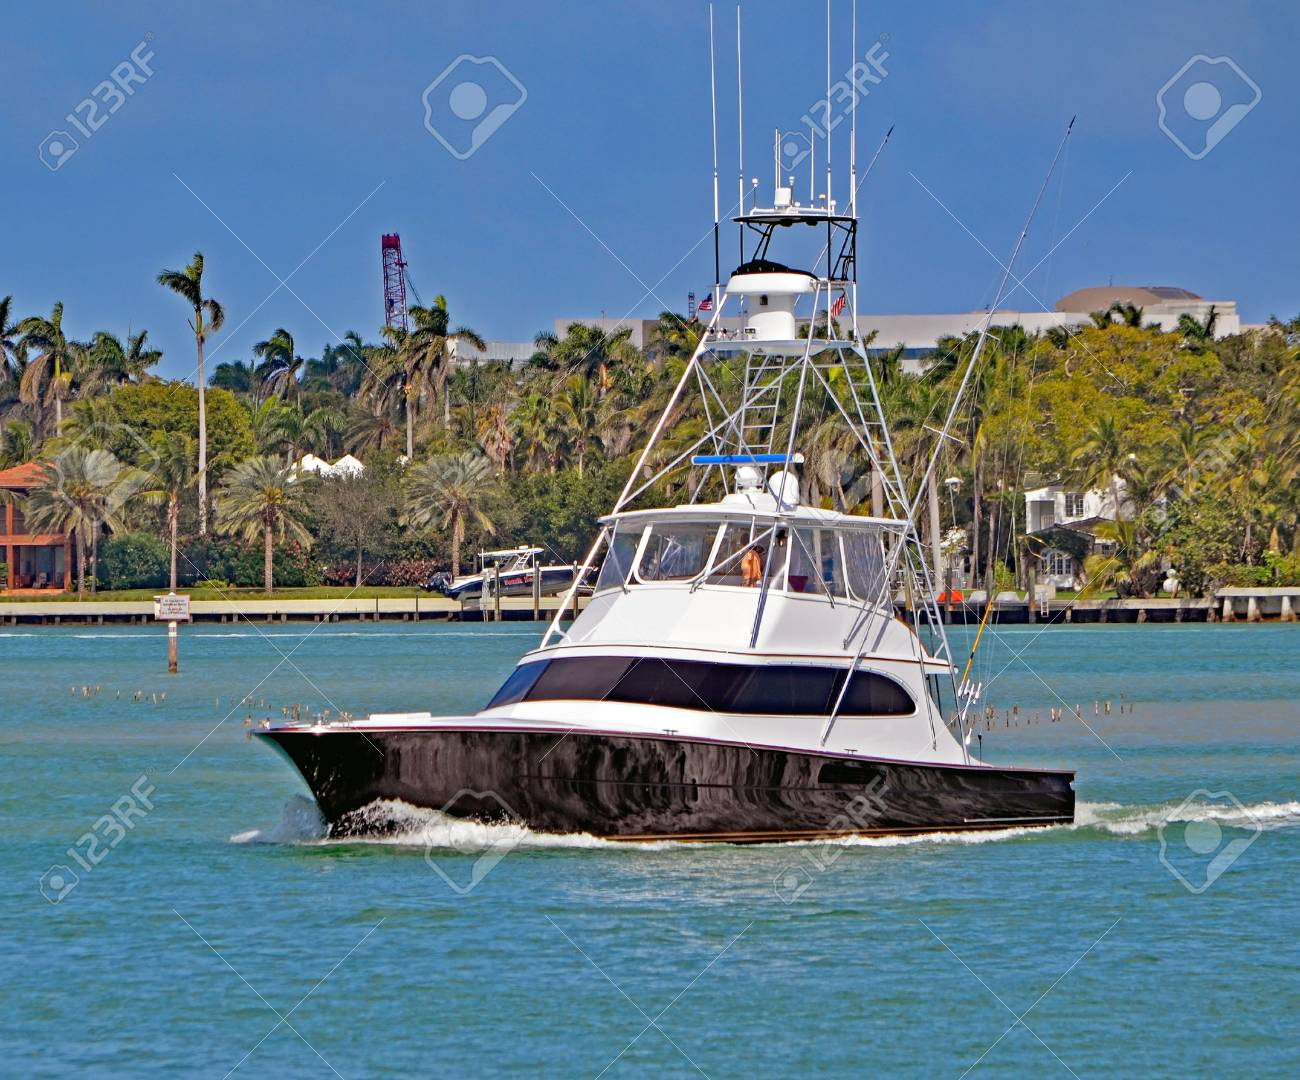 Black And White Sport Fishing Boat On The Florida Intra Coastal